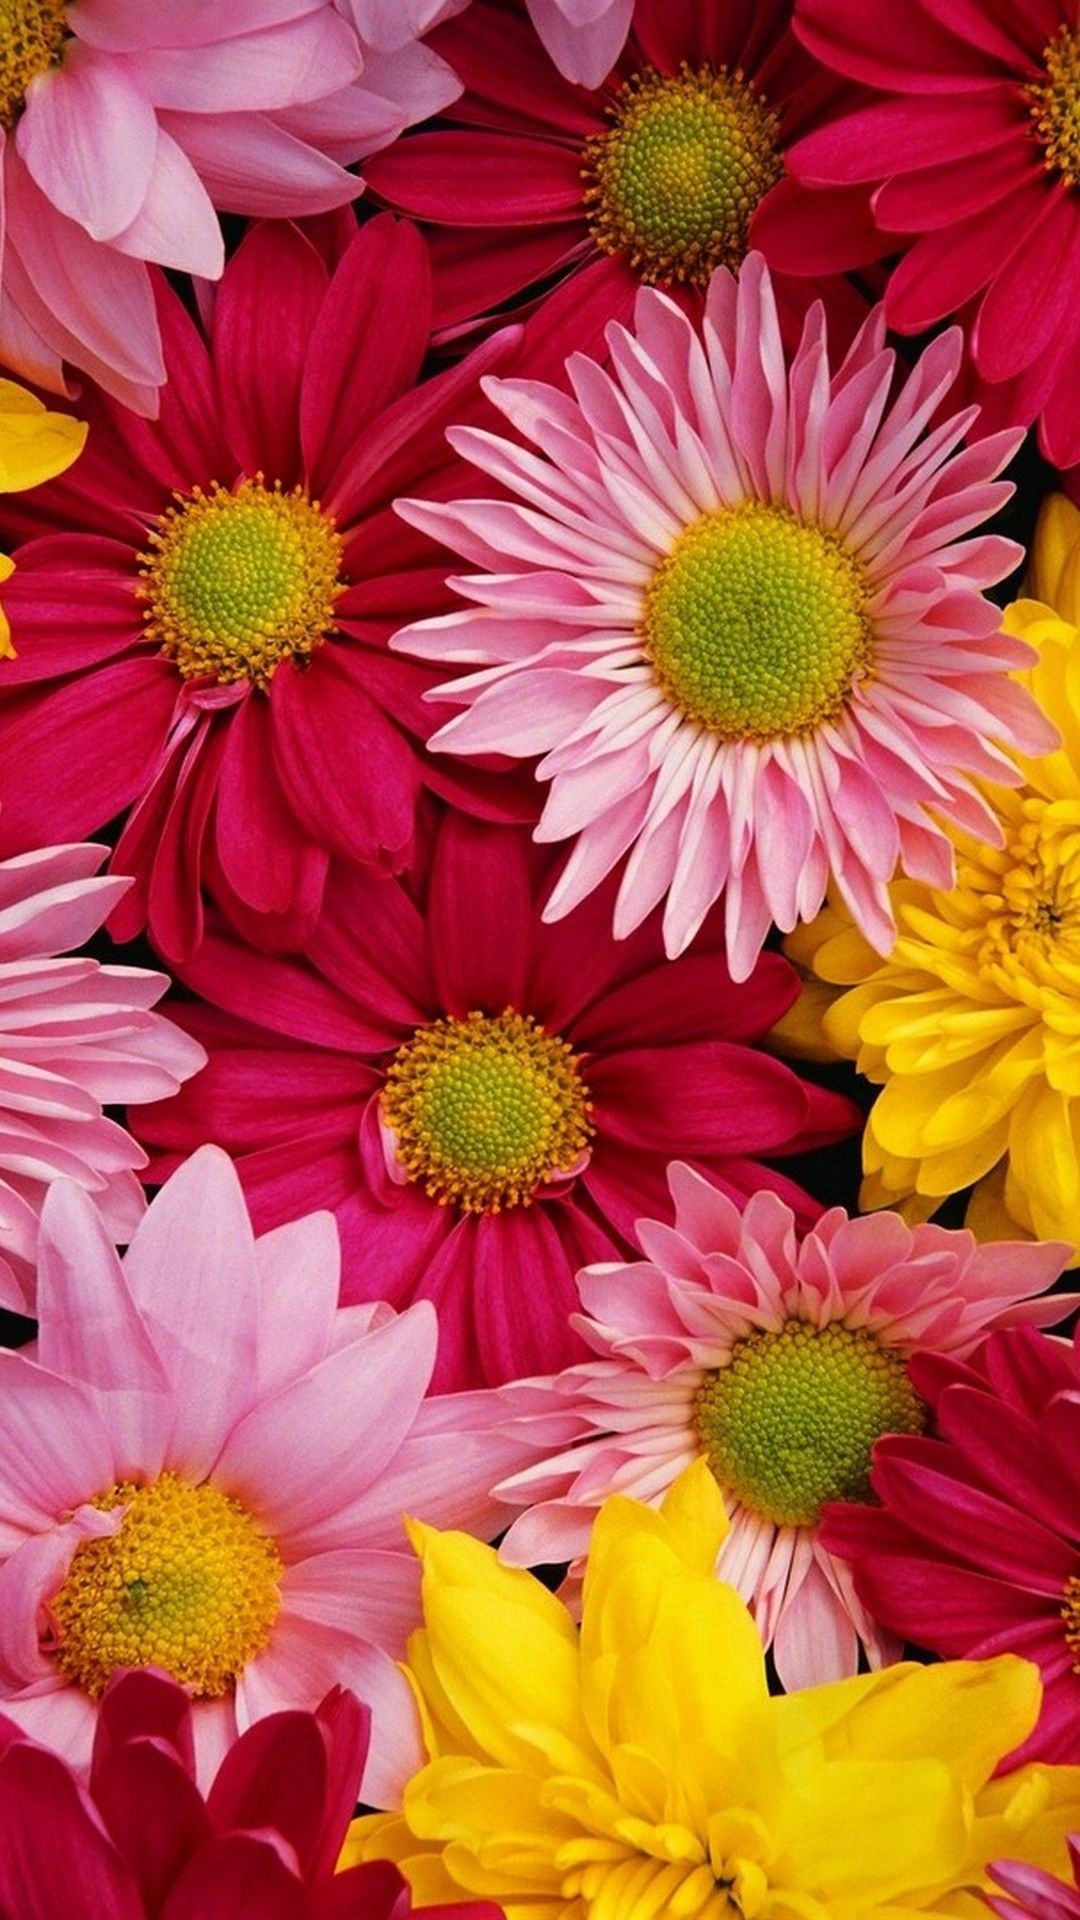 Flower Iphone Wallpapers Top Free Flower Iphone